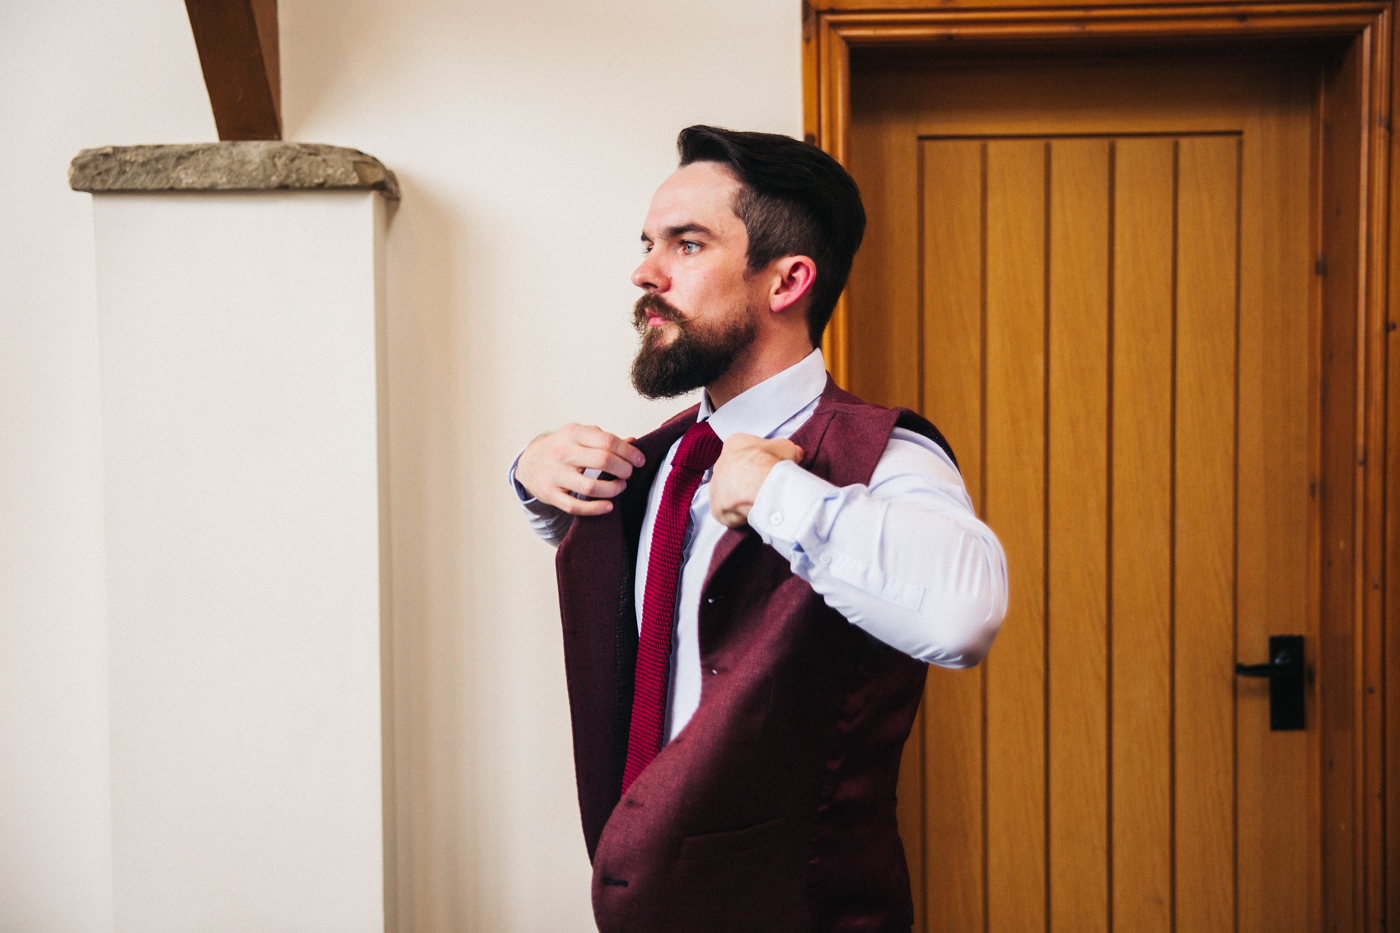 a man puts on his waistcoat. creative wedding photography north yorkshire teesside north east + stop motion wedding films uk